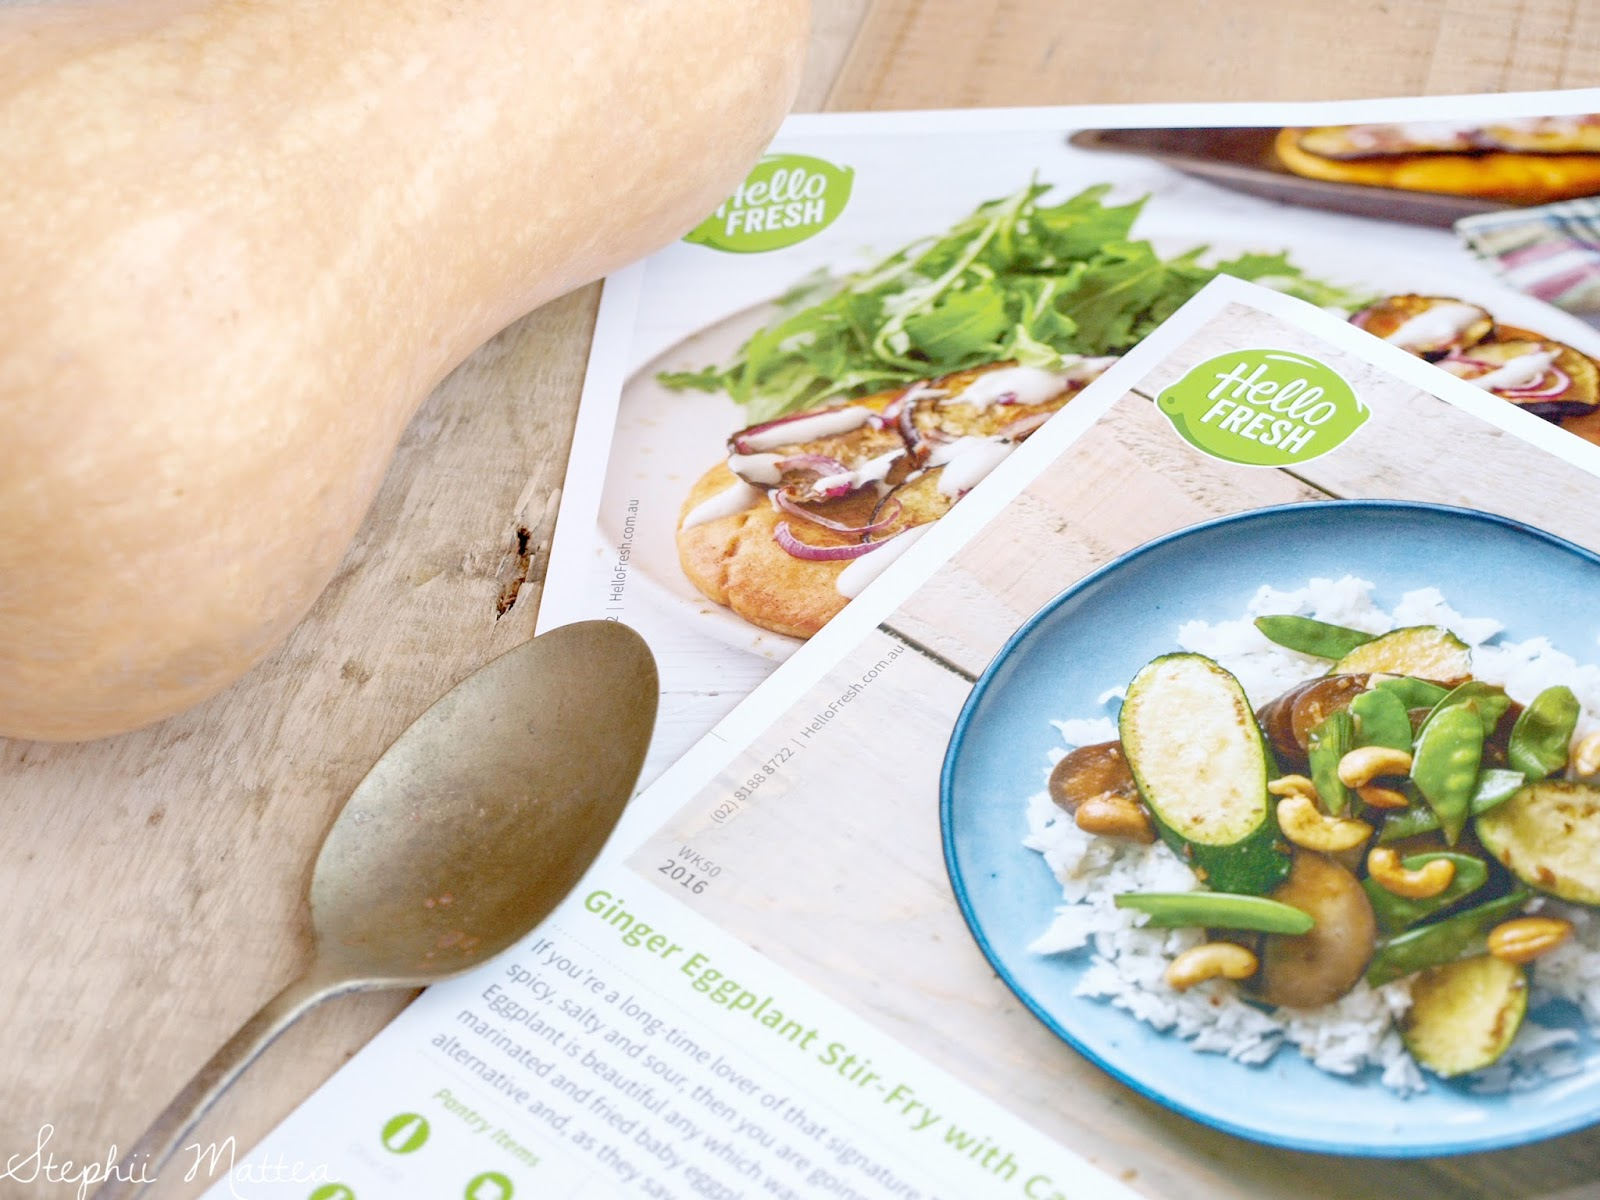 Dimensions Length Hellofresh  Meal Kit Delivery Service